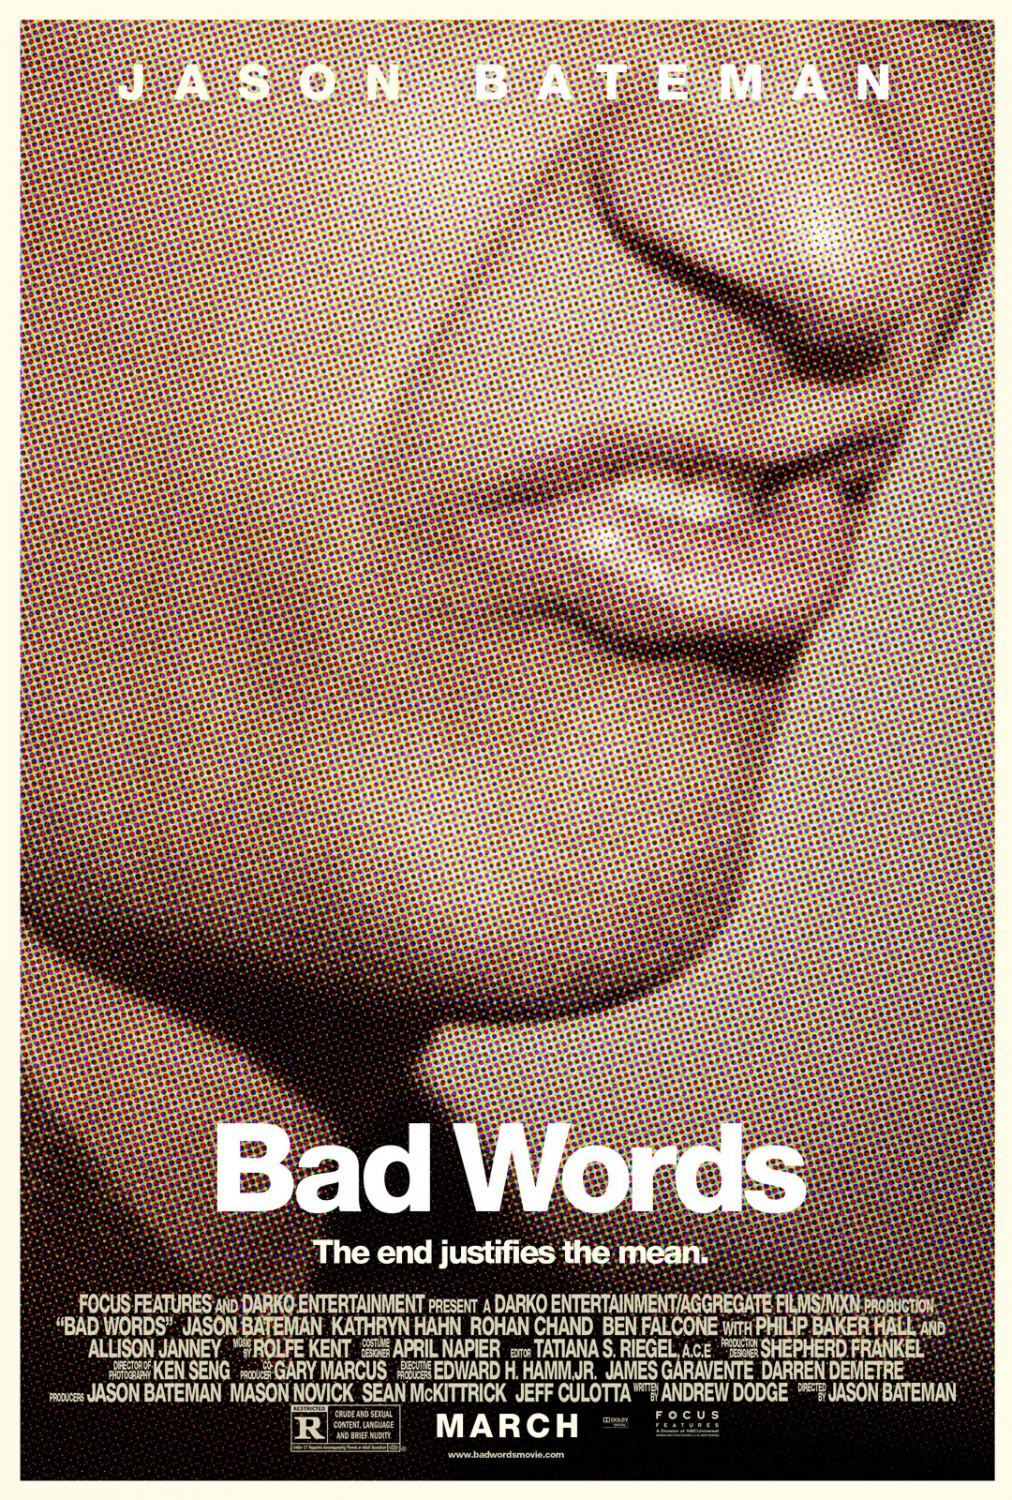 Bad Words-Official Poster Banner POSTER XLRG-27JANEIRO2014